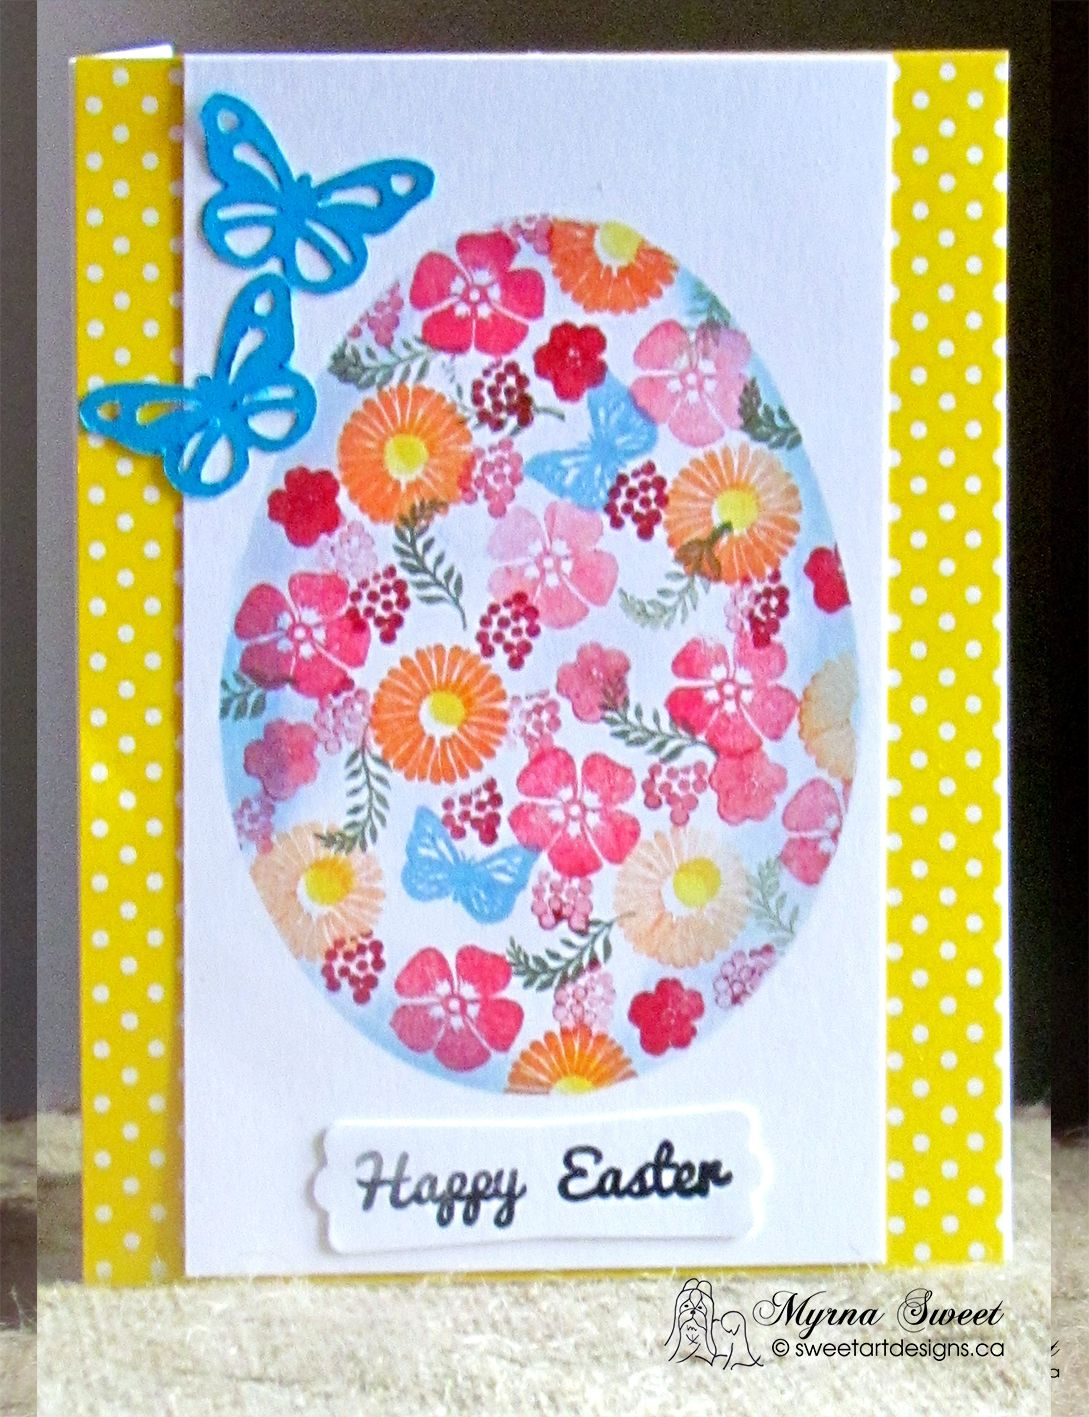 Easter card  For details about my card, see my blog at www.sweetartdesigns.ca